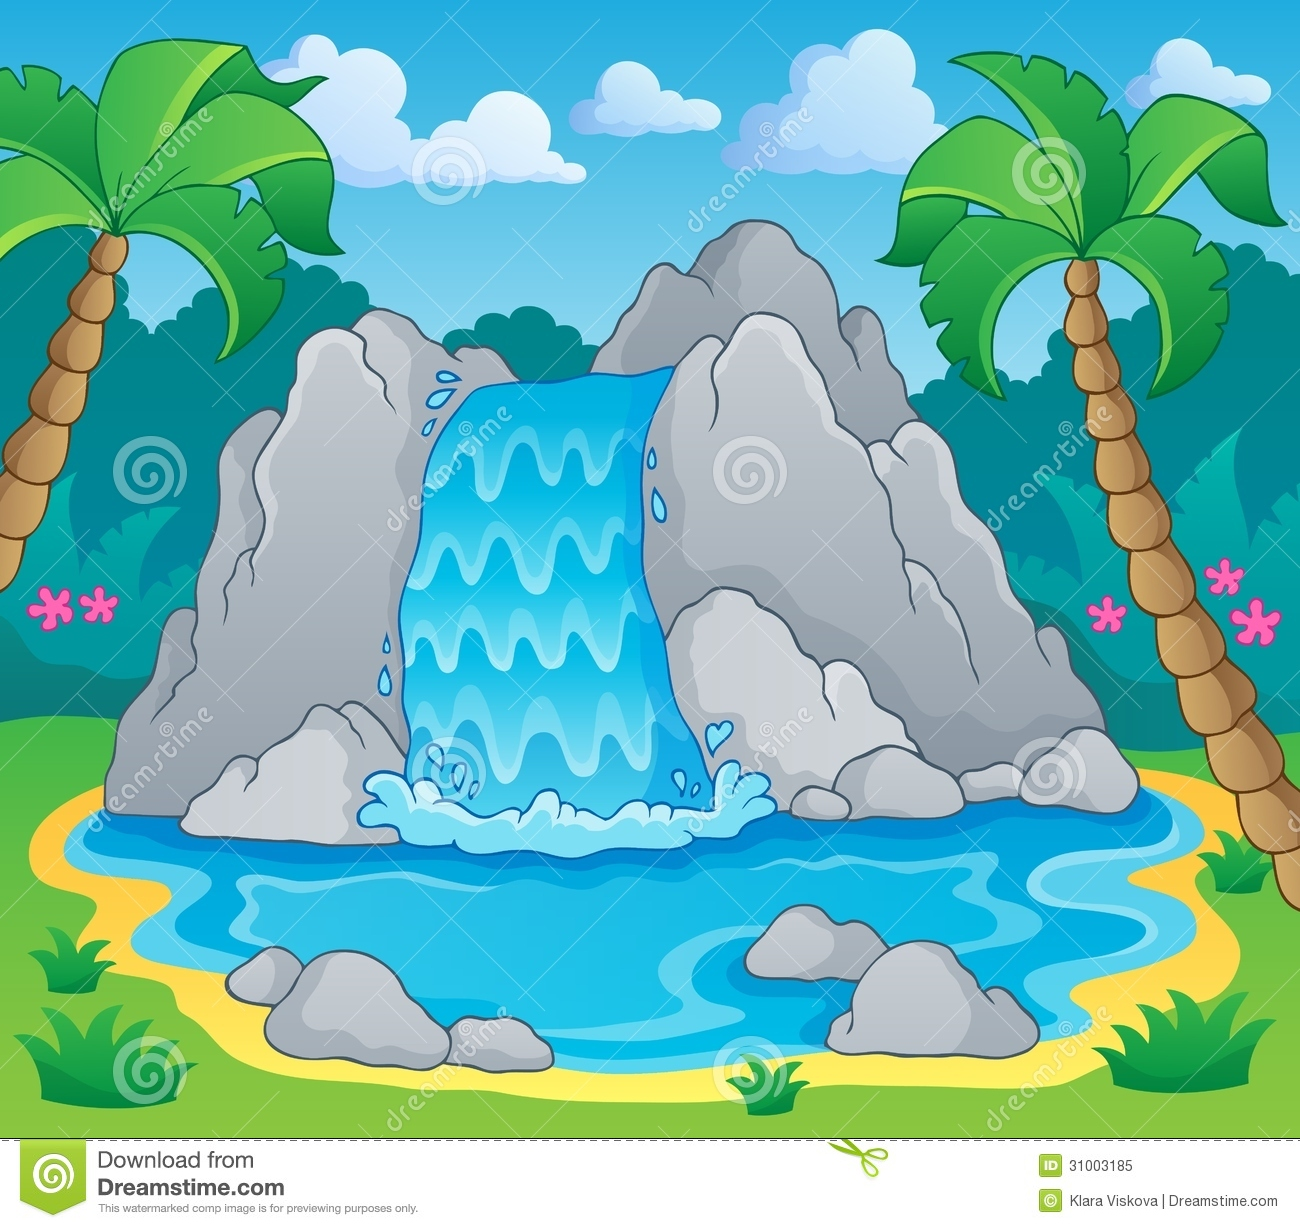 Image With Waterfall Theme 2 Royalty Free Stock Photo  Image 31003185